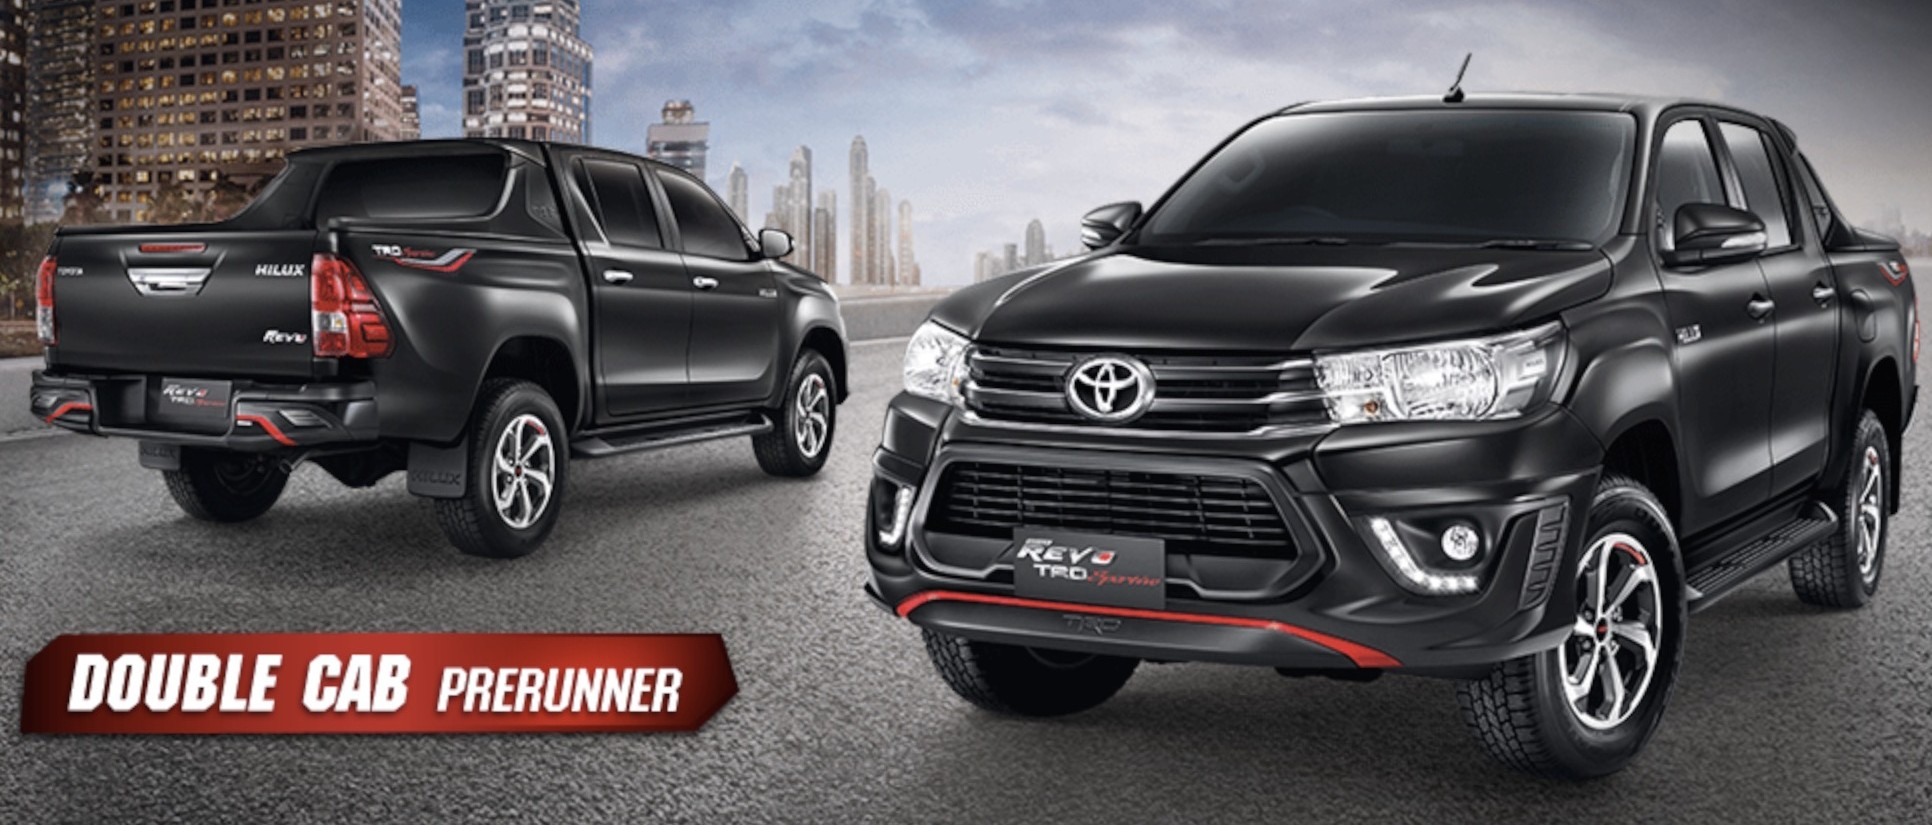 New Toyota Hilux Trd Sportivo Introduced In Bangkok Image